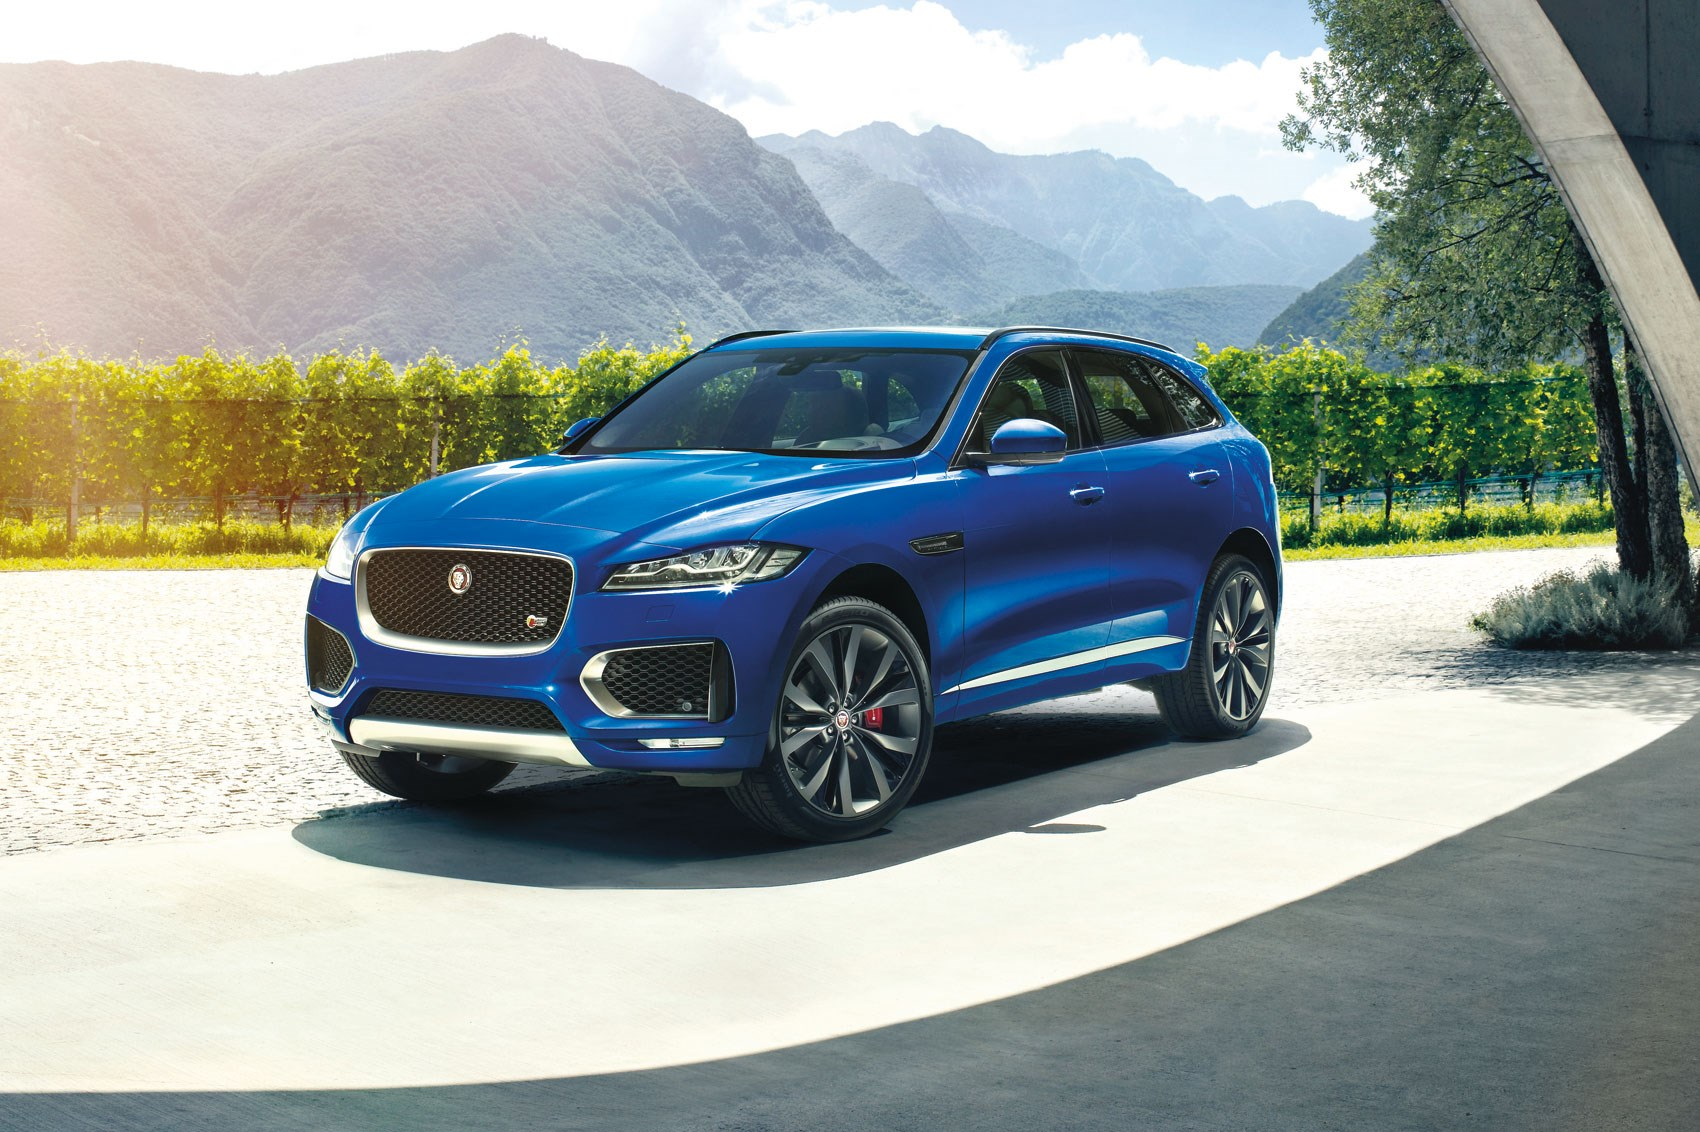 jaguar f pace revealed at 2015 frankfurt motor show by car magazine. Black Bedroom Furniture Sets. Home Design Ideas